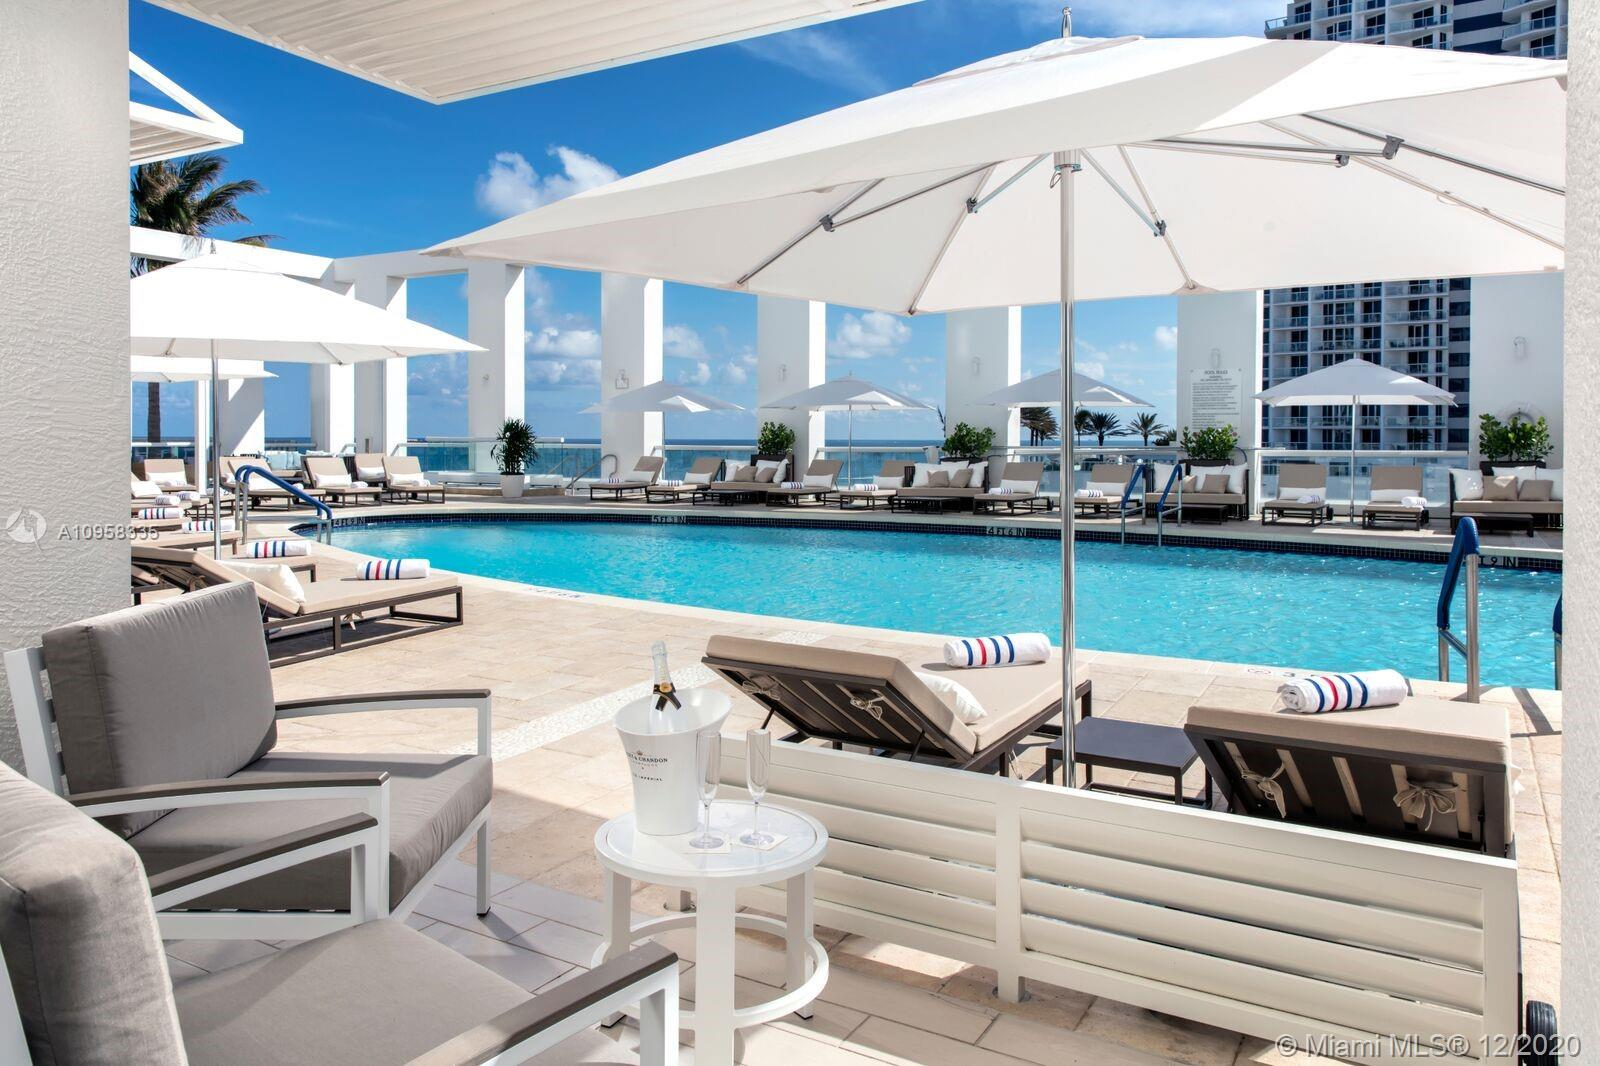 Enjoy the 5-star services of The Conrad Fort Lauderdale Beach, Fort Lauderdale's newest hotel residence. Daily housekeeping included!!! Also included: weekly laundry service, pool/beach service, cable/internet, bike share, concierge and 24 hours valet. This turn-key furnished unit is a perfect weekend getaway. Porcelain tile and marble flooring, marble bathroom, owners closet, Subzero refrigerator, Wolf cook top, Bosch microwave. Interiors by Steven G.. Highest and farthest East Junior Suite in the building! Seller motivated.